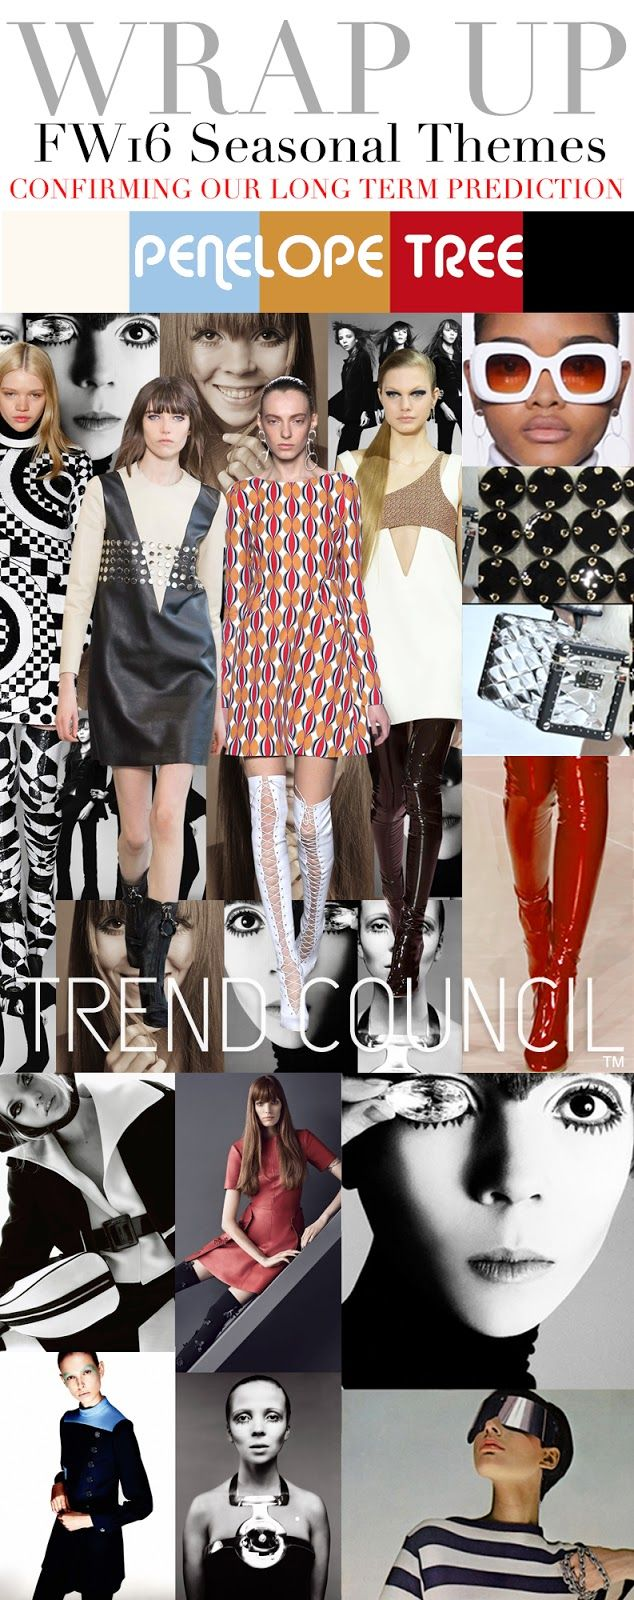 FASHION VIGNETTE: TRENDS // TREND COUNCIL - WOMEN'S AND MEN'S . FALL 2016